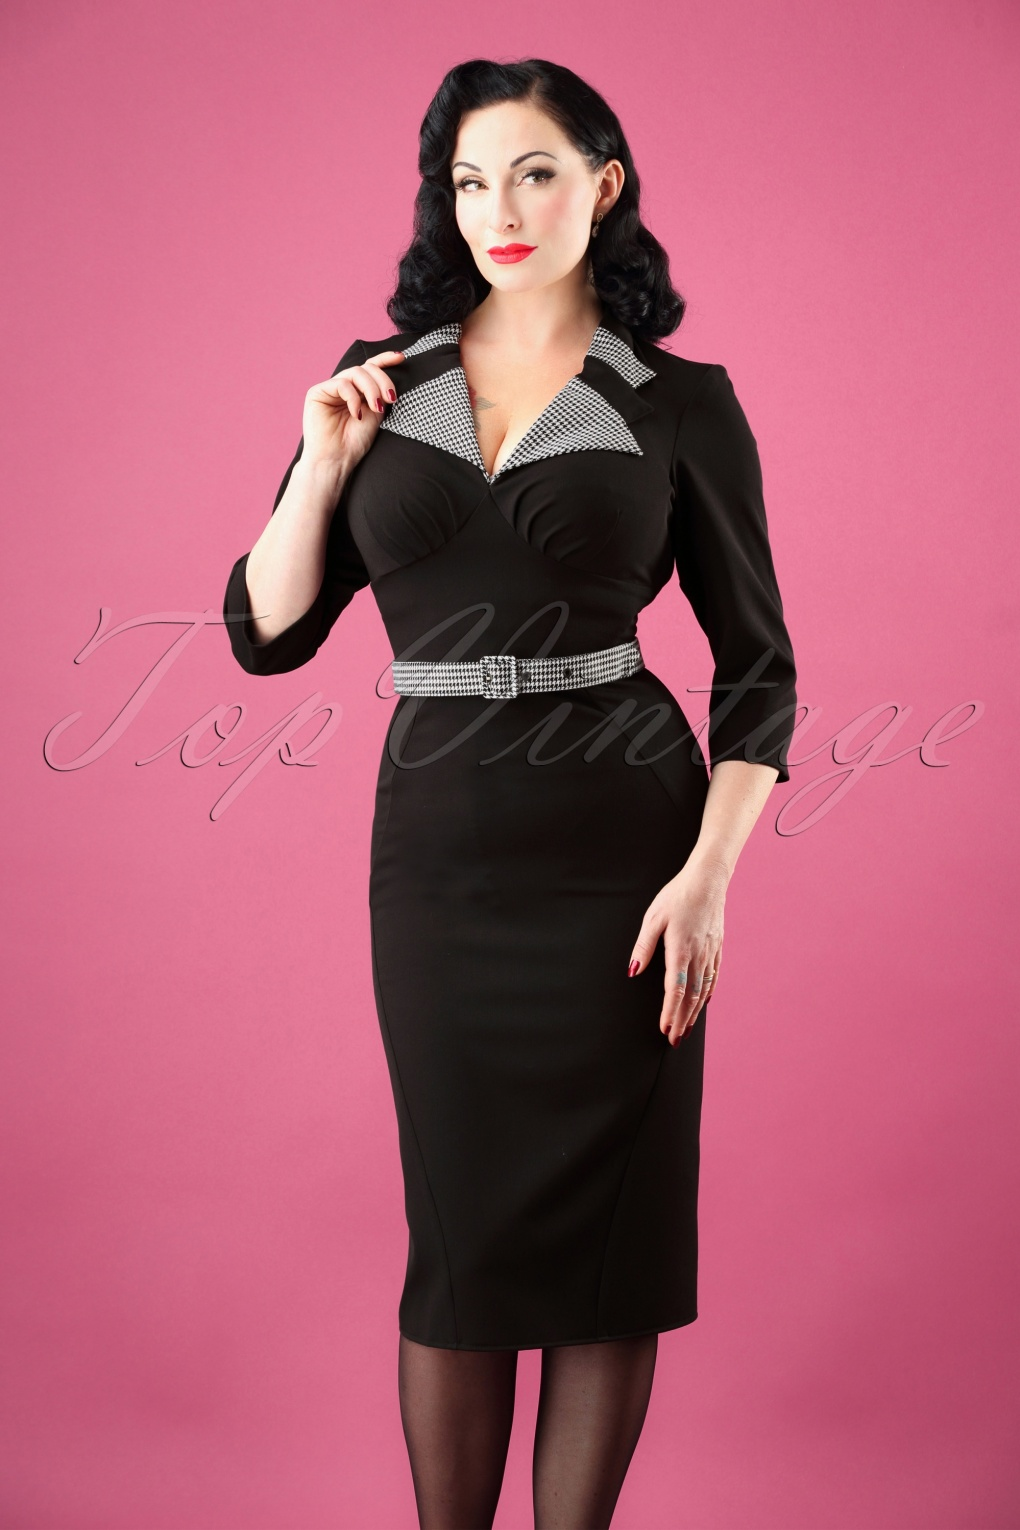 Vintage Tea Dresses, Floral Tea Dresses, Tea Length Dresses 40s Lucie Houndstooth Pencil Dress in Black £56.43 AT vintagedancer.com